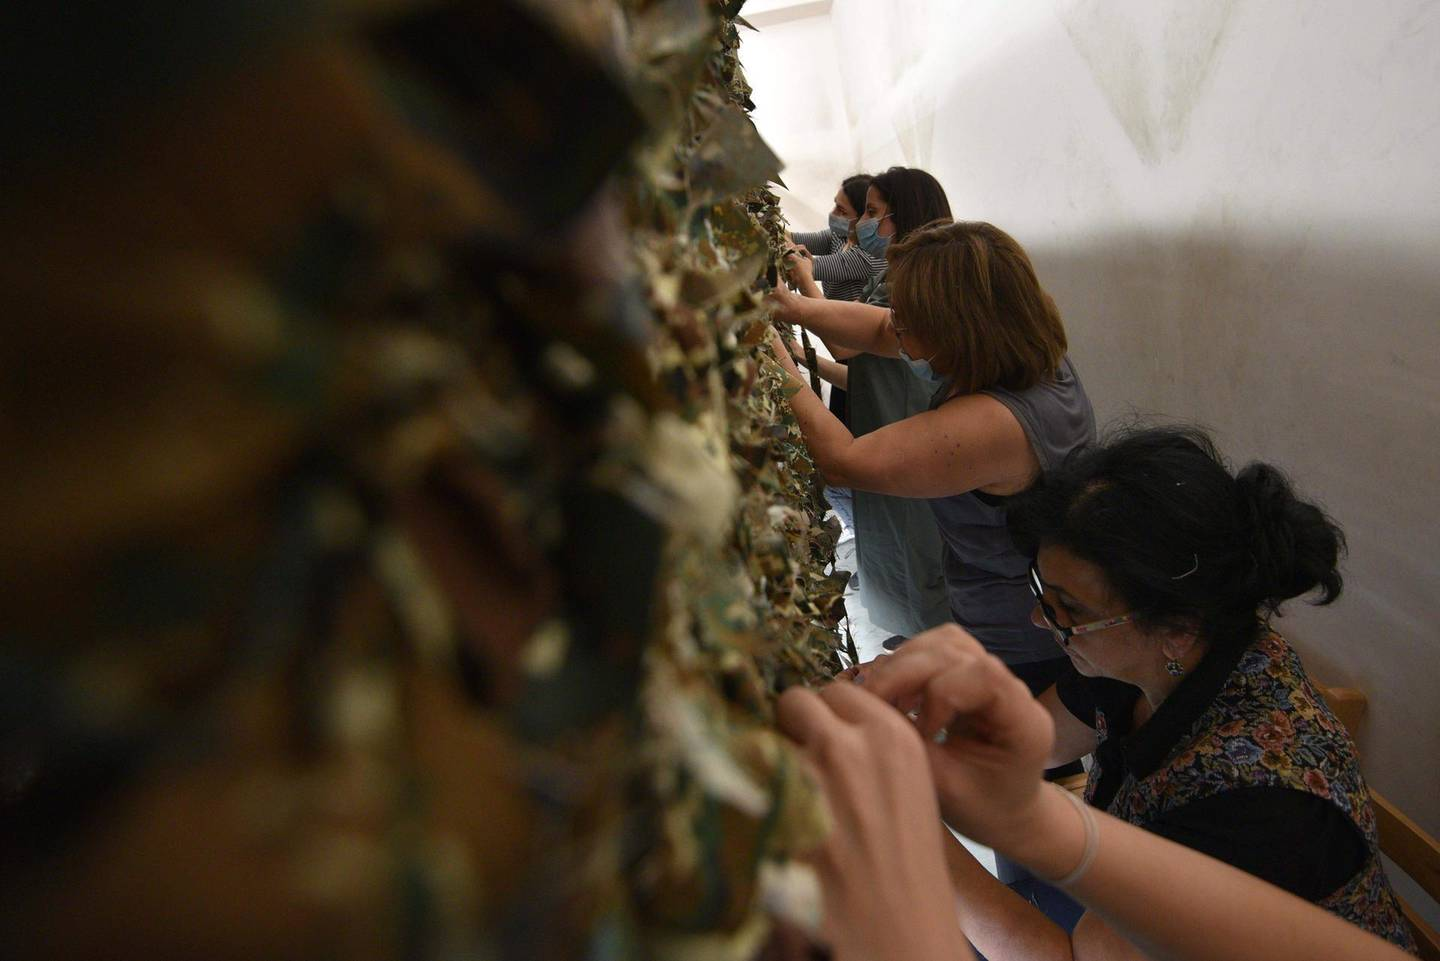 TOPSHOT - Armenian women make camouflage net to be sent to a frontline in Karabakh in Yerevan on October 18, 2020.  Baku and Yerevan have for decades been locked in a simmering conflict over Nagorno-Karabakh, an ethnically Armenian region of Azerbaijan which broke away from Baku in a 1990s war that claimed the lives of some 30,000 people. The Caucasus neighbours have defied international calls to halt hostilities and accused the other of starting new clashes that began September 27 and have seen the heaviest fighting since a 1994 truce.  / AFP / Karen MINASYAN